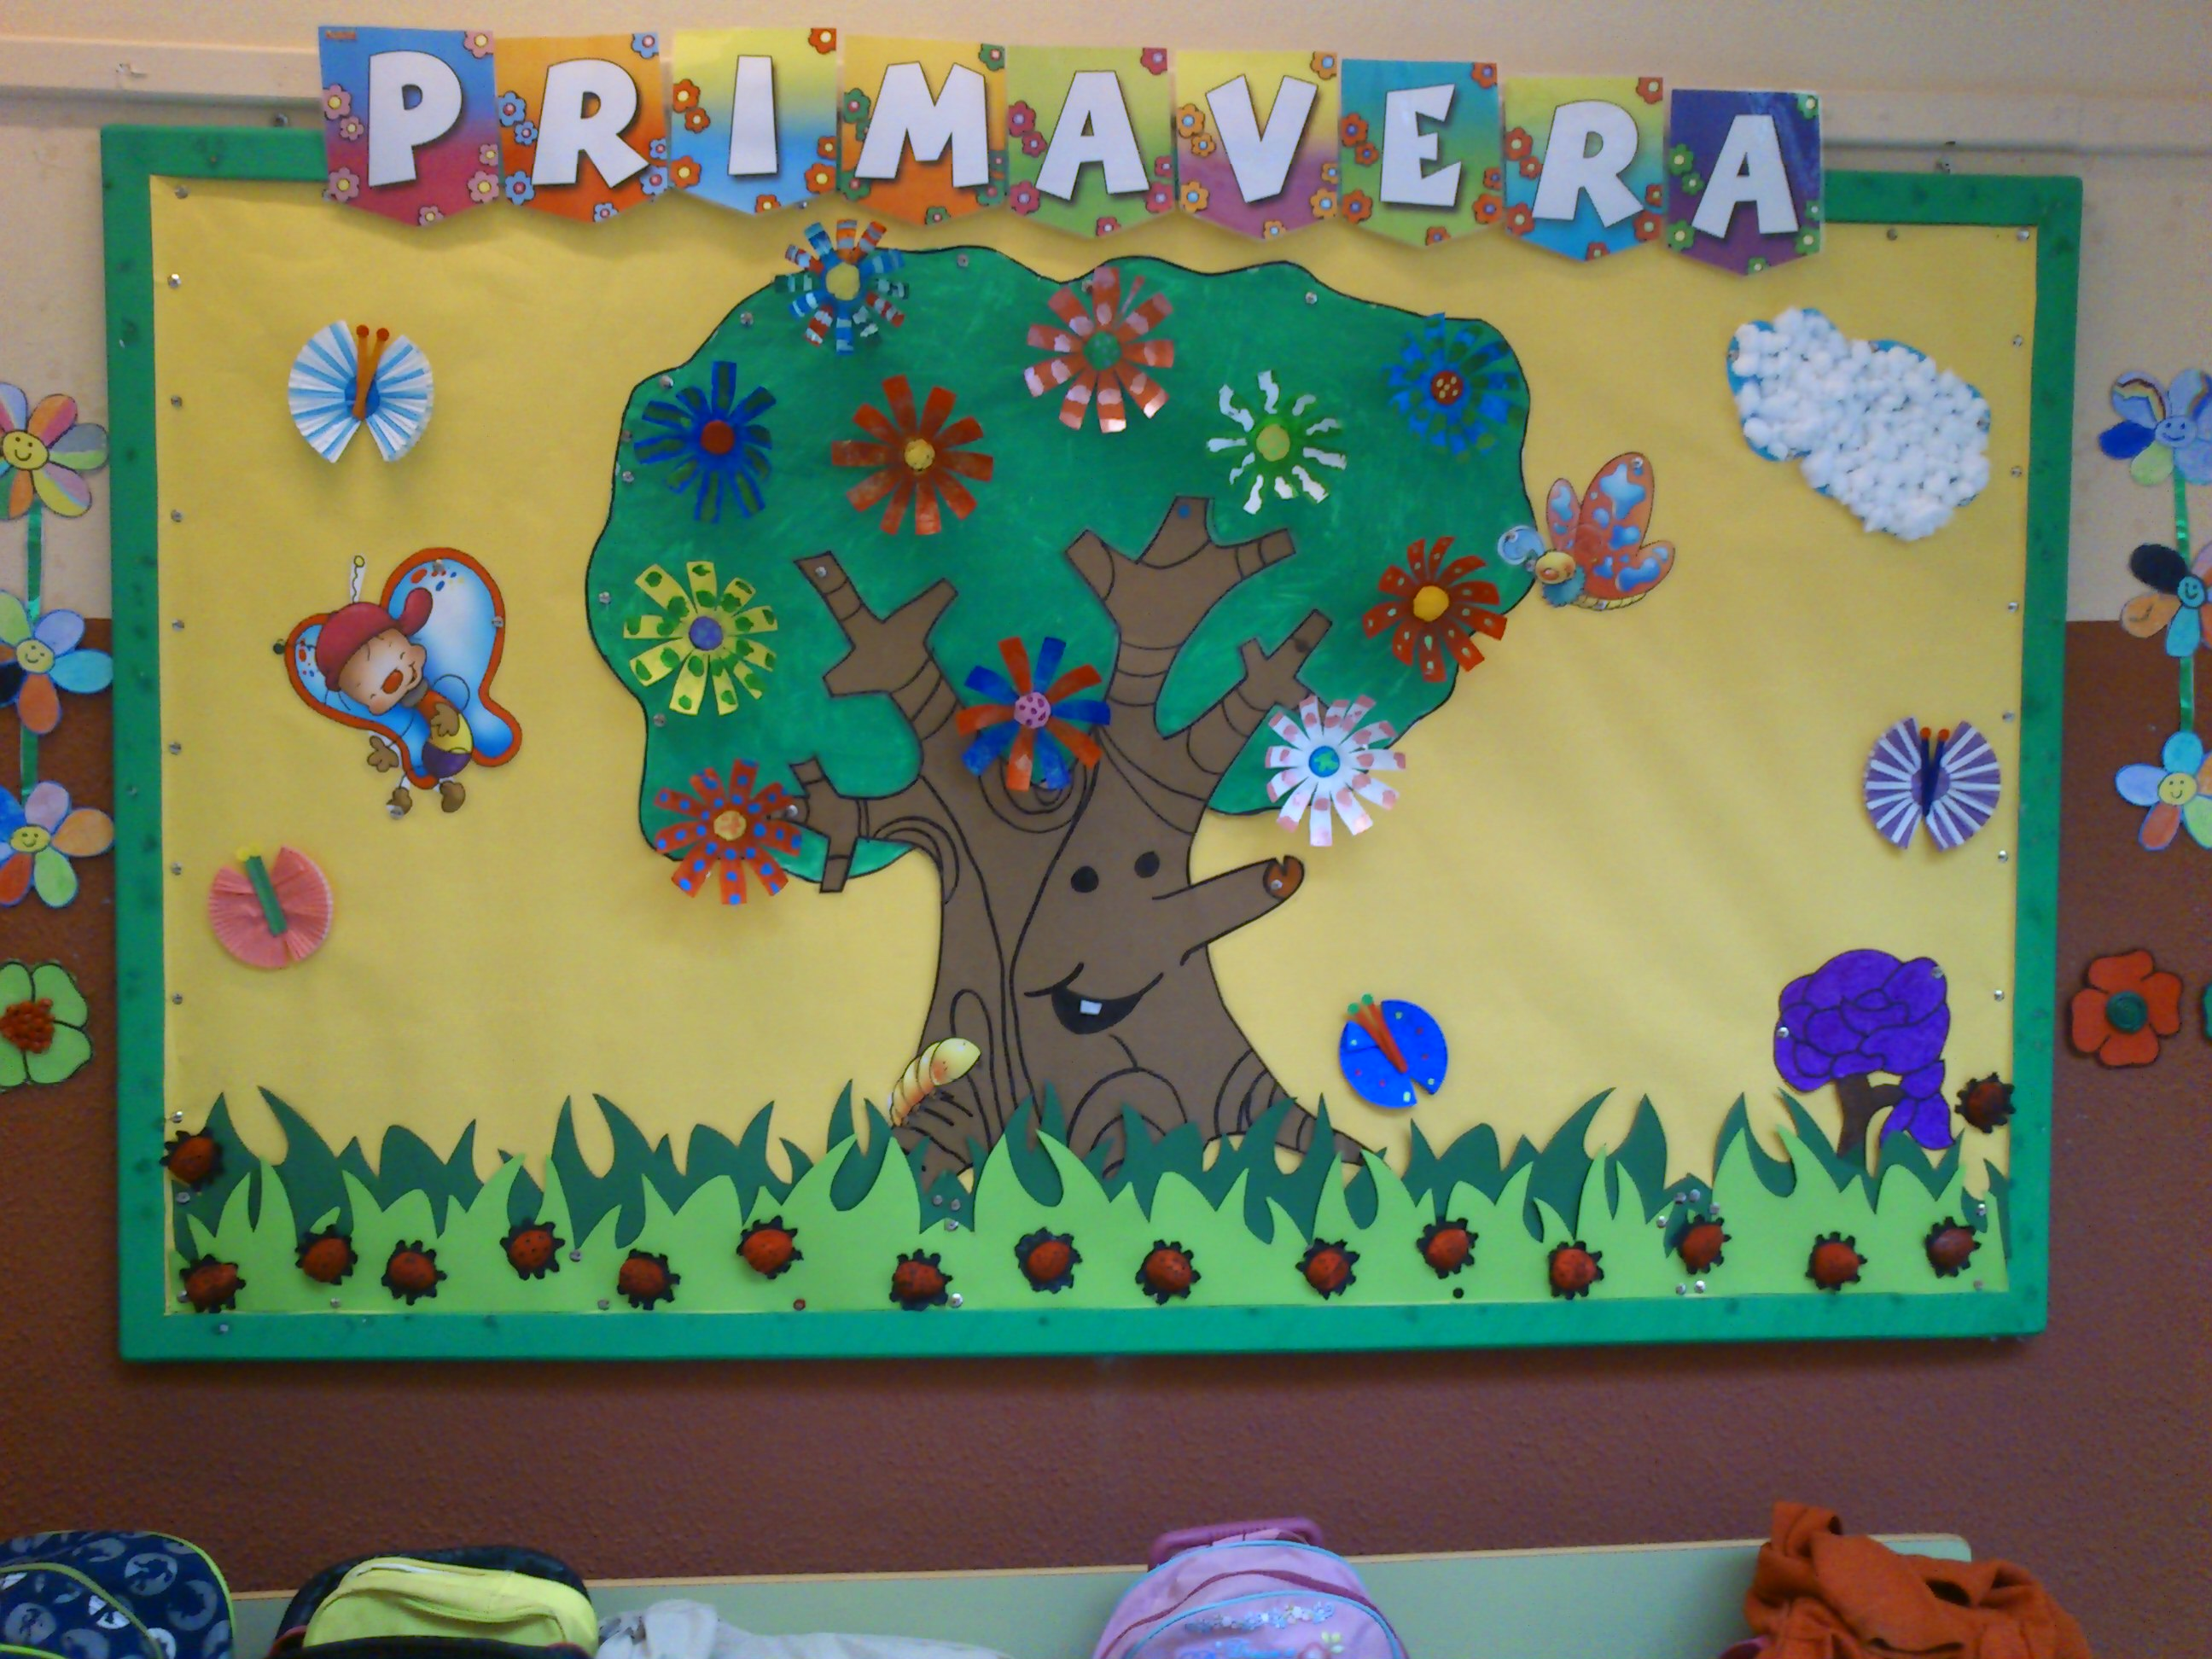 Murales primavera 13 imagenes educativas for Como decorar un mural